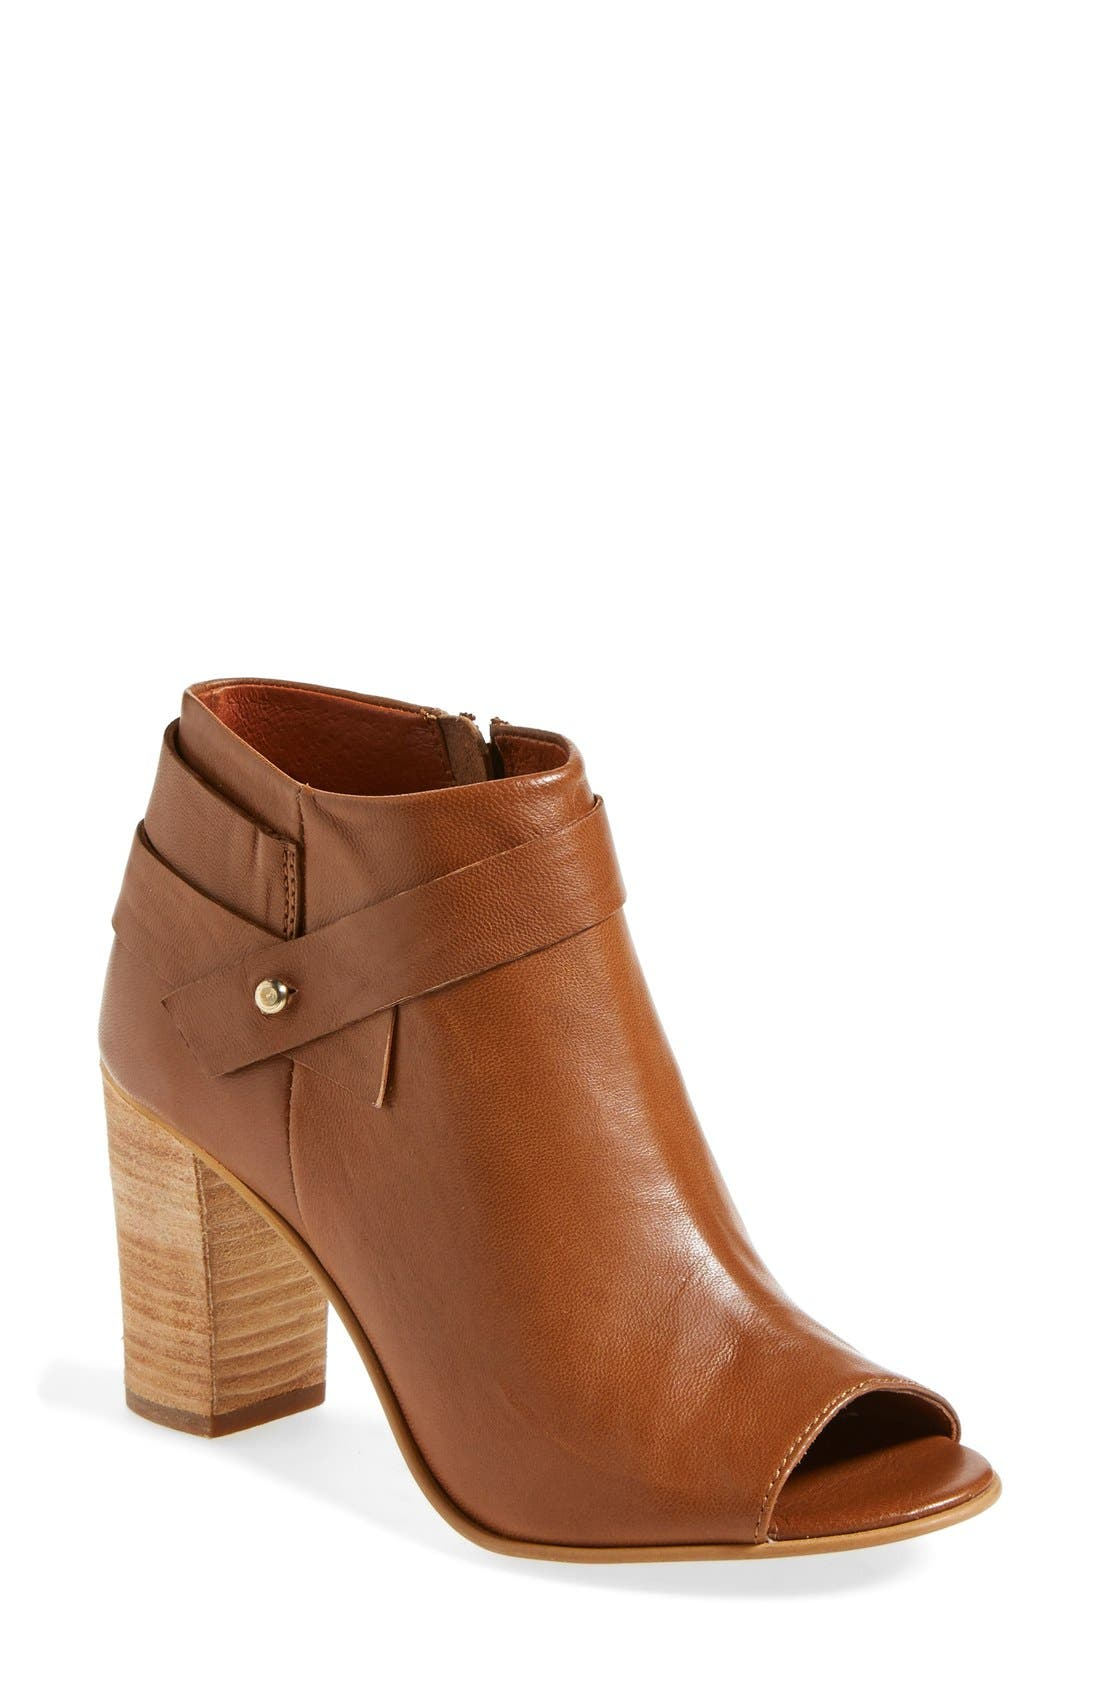 Alternate Image 1 Selected - Steve Madden 'Now' Open Toe Bootie (Women)